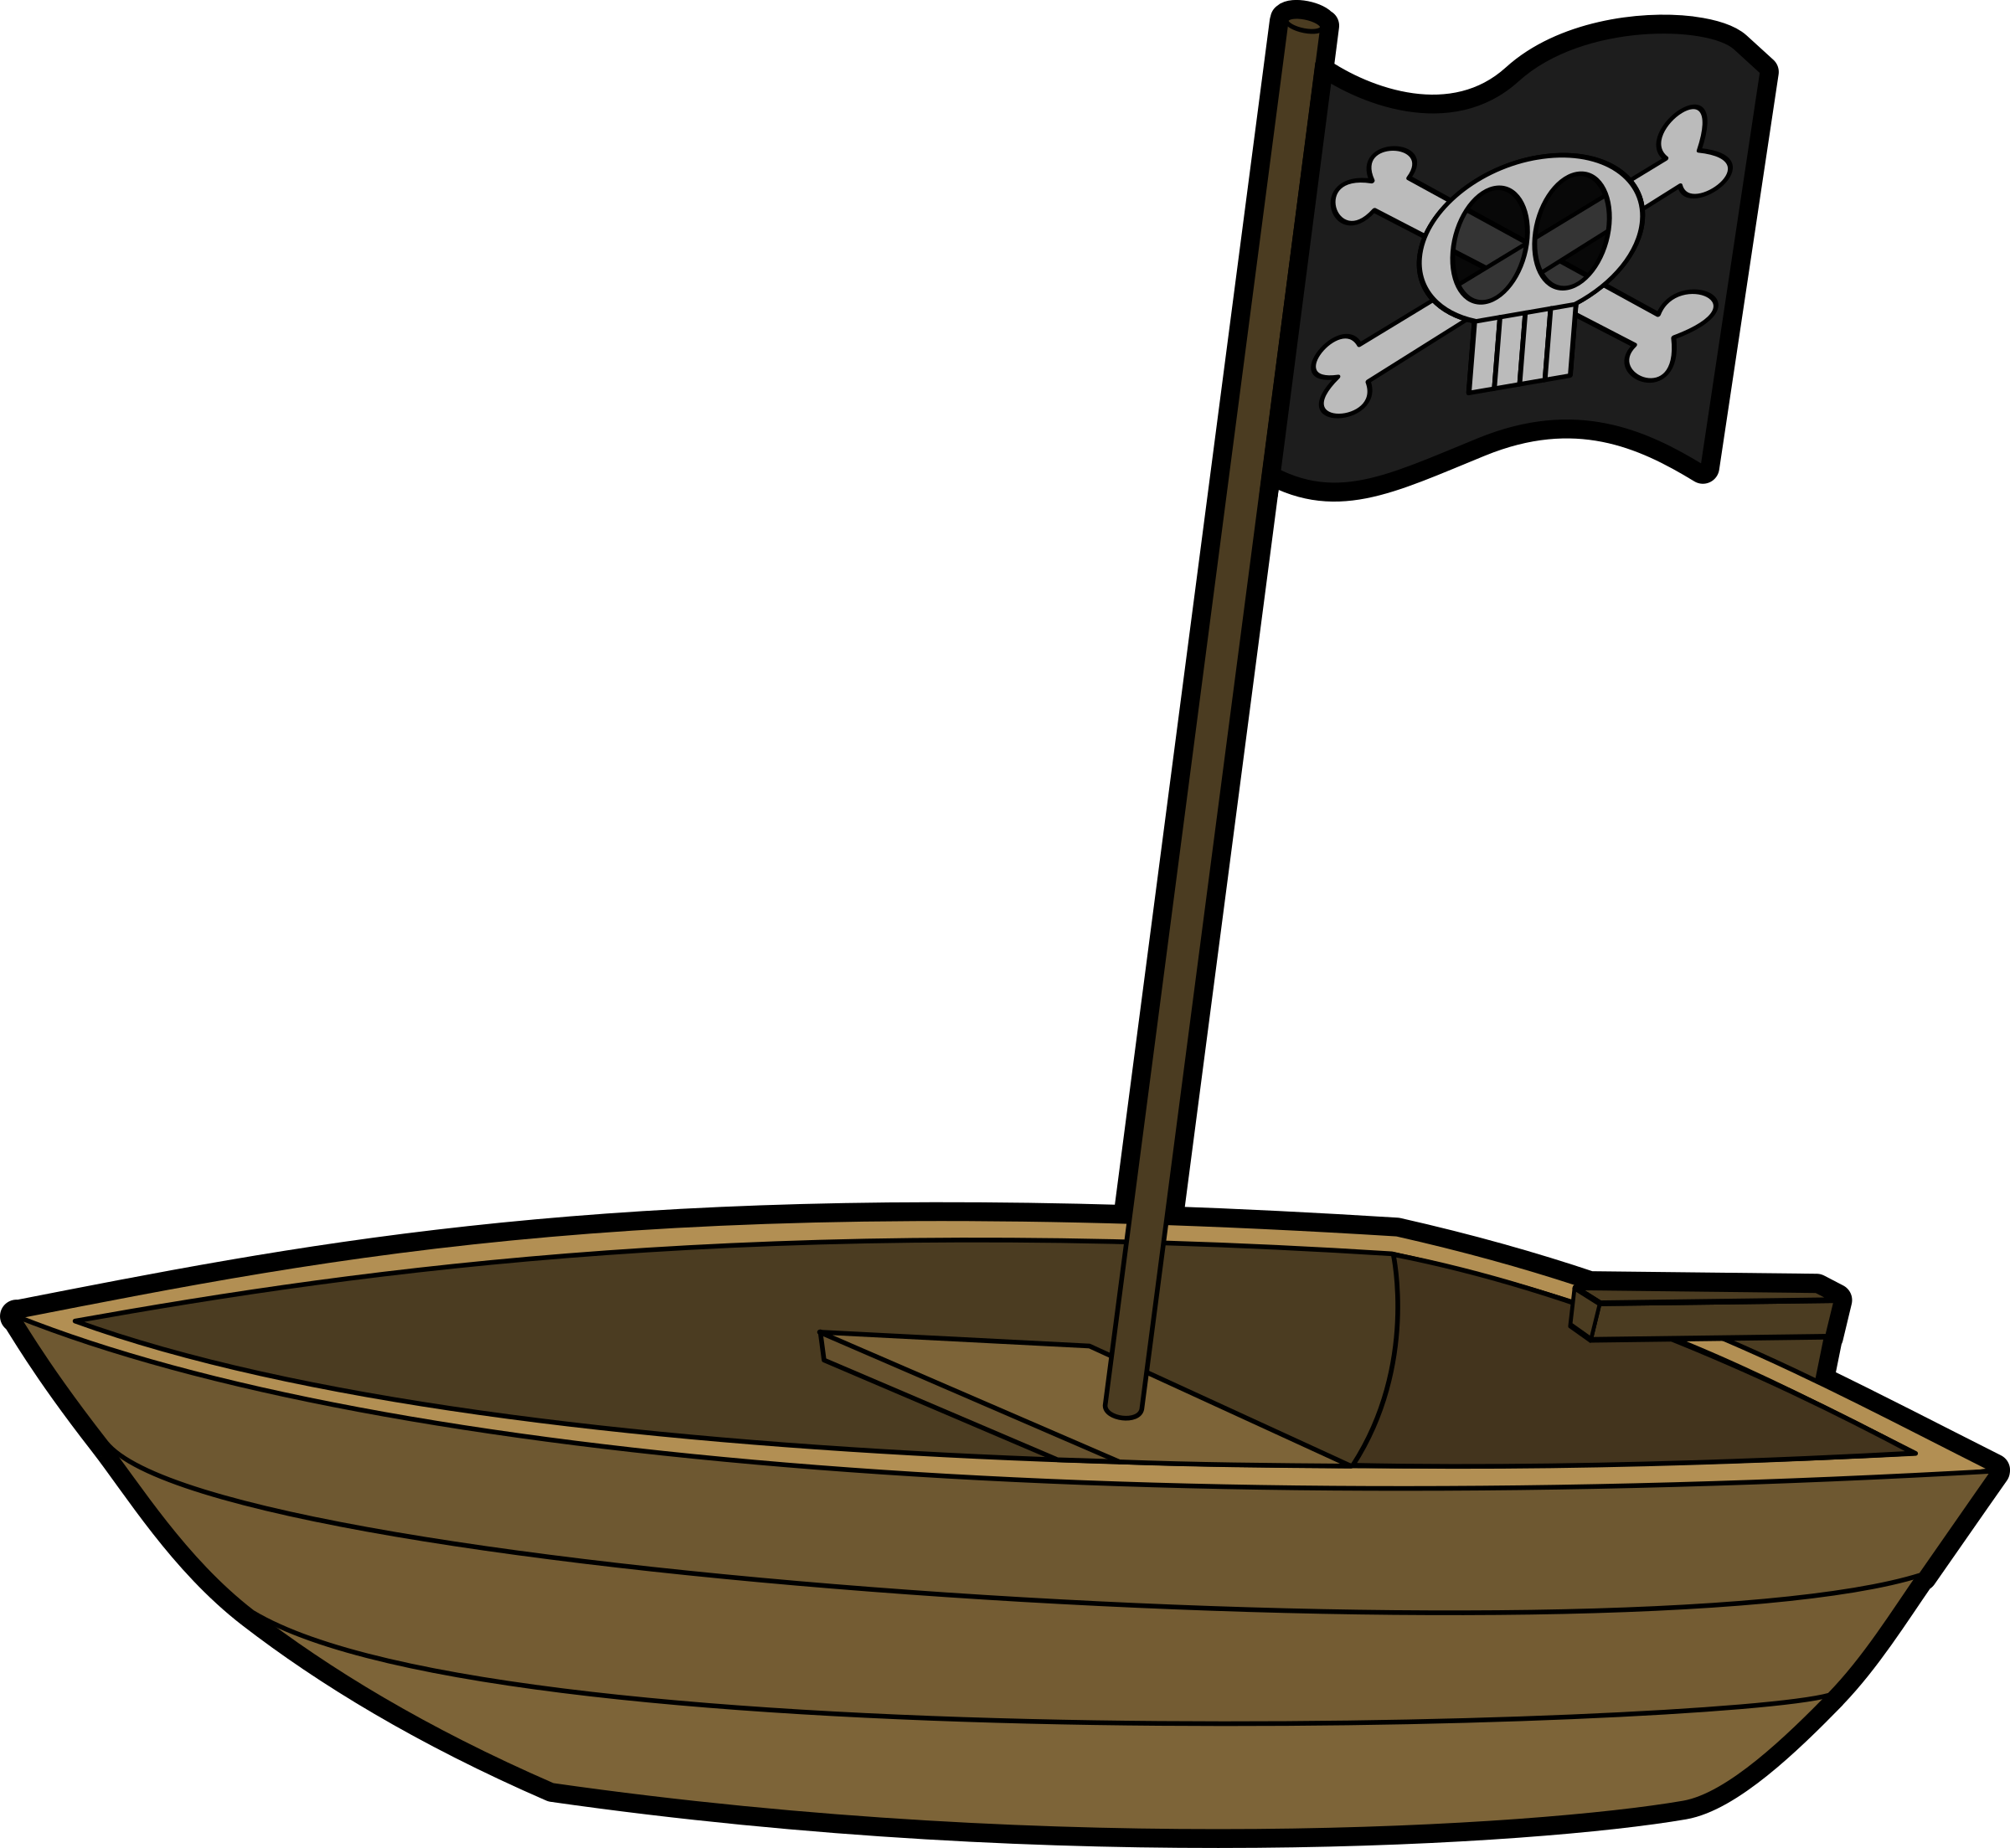 Boat clipart little boat Pirates boat Clipart boat Pirates